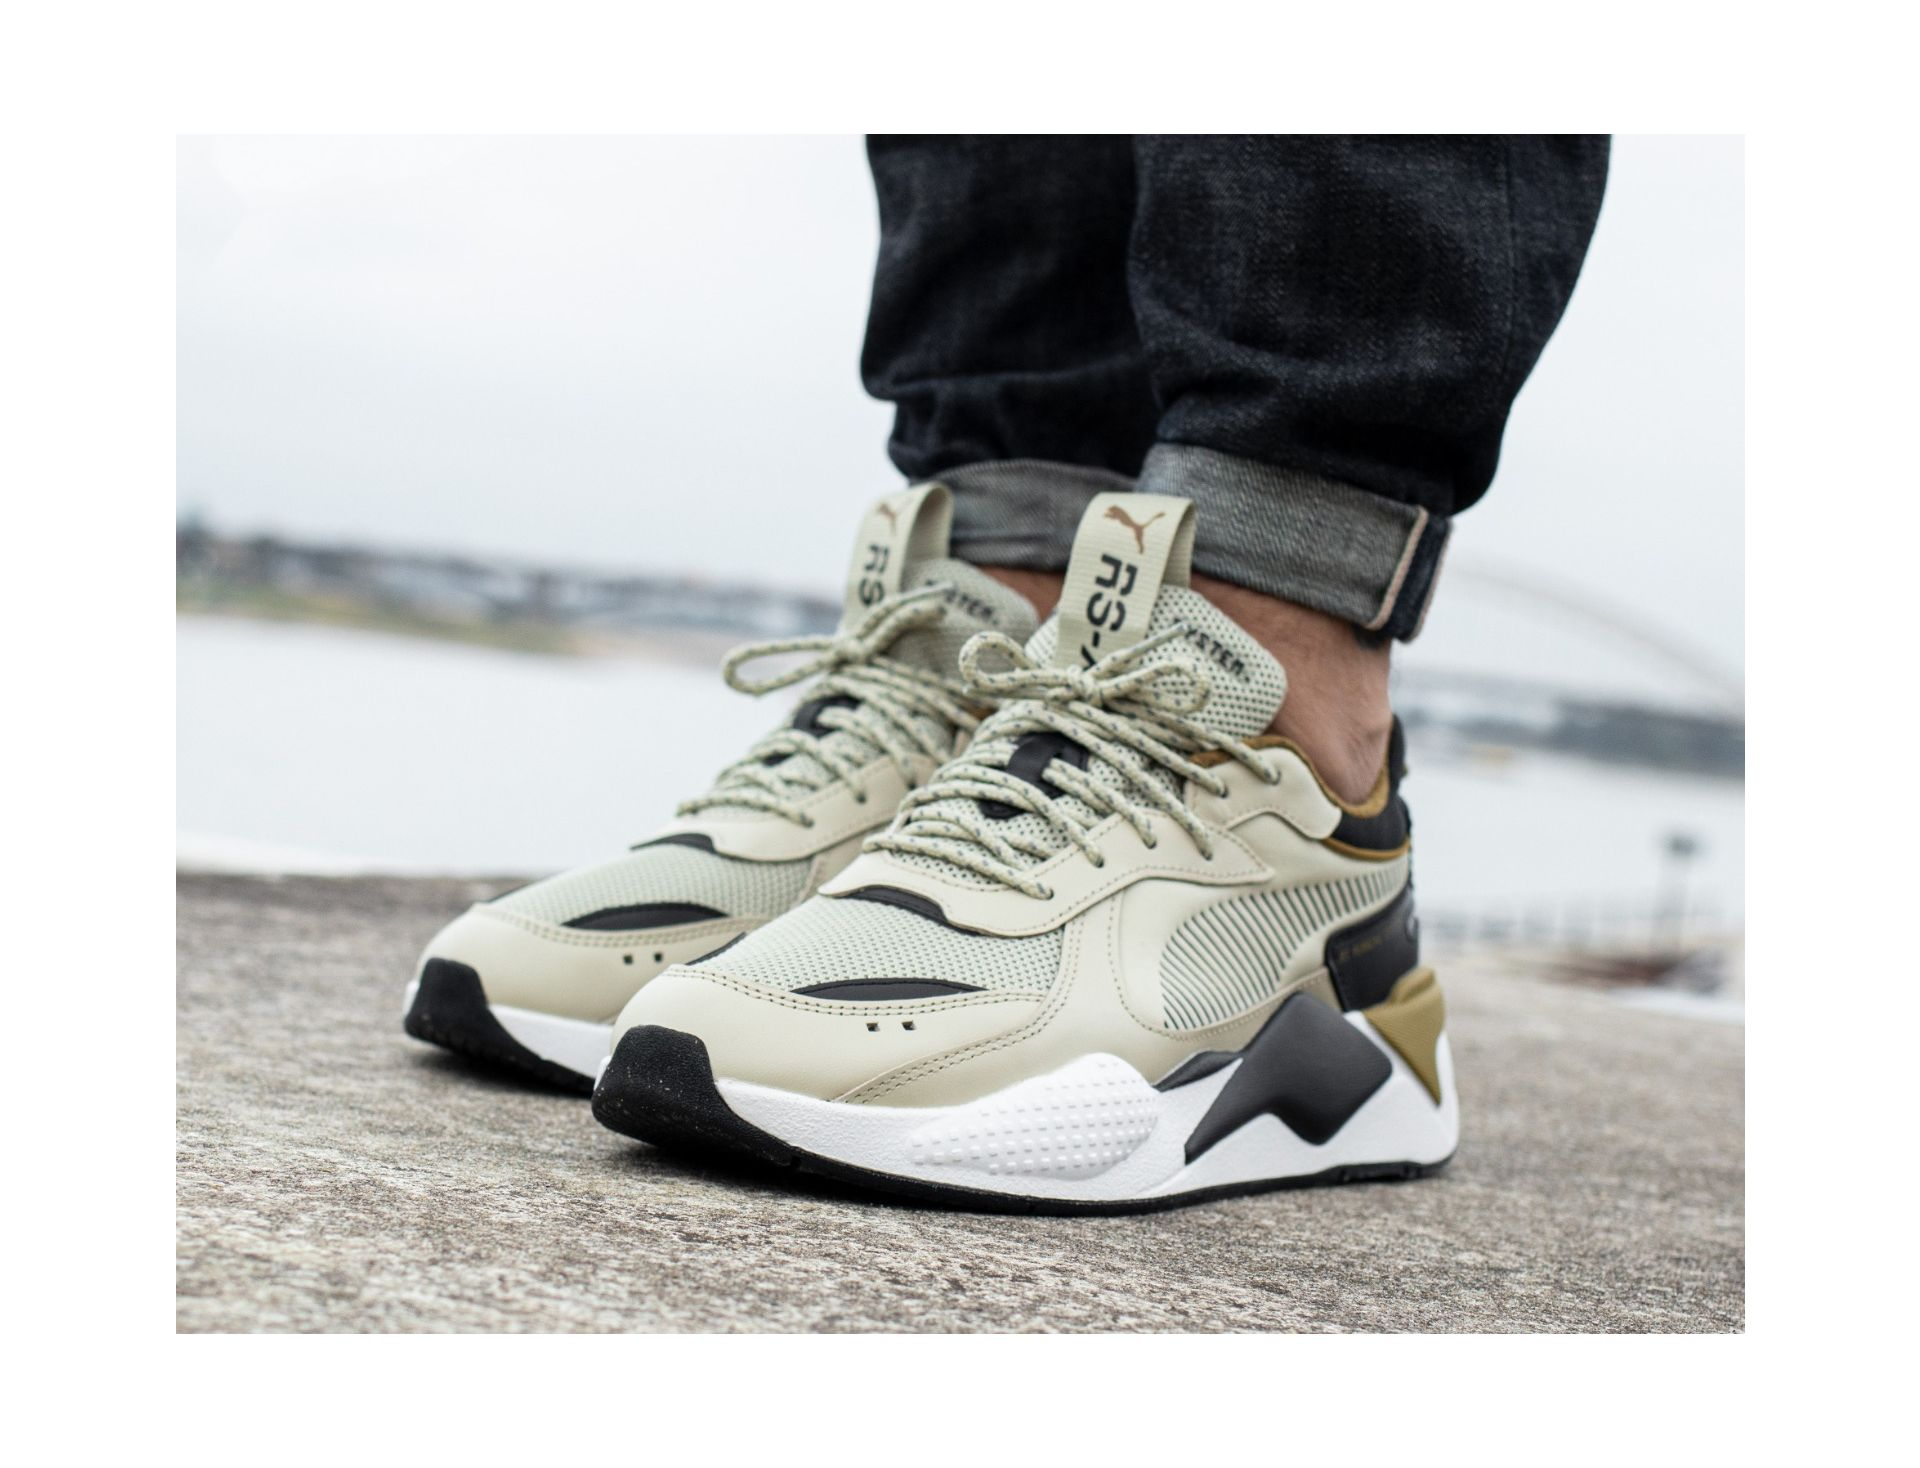 Puma RS-X CORE overcast black | Bijsmaak Sneaker Boutique